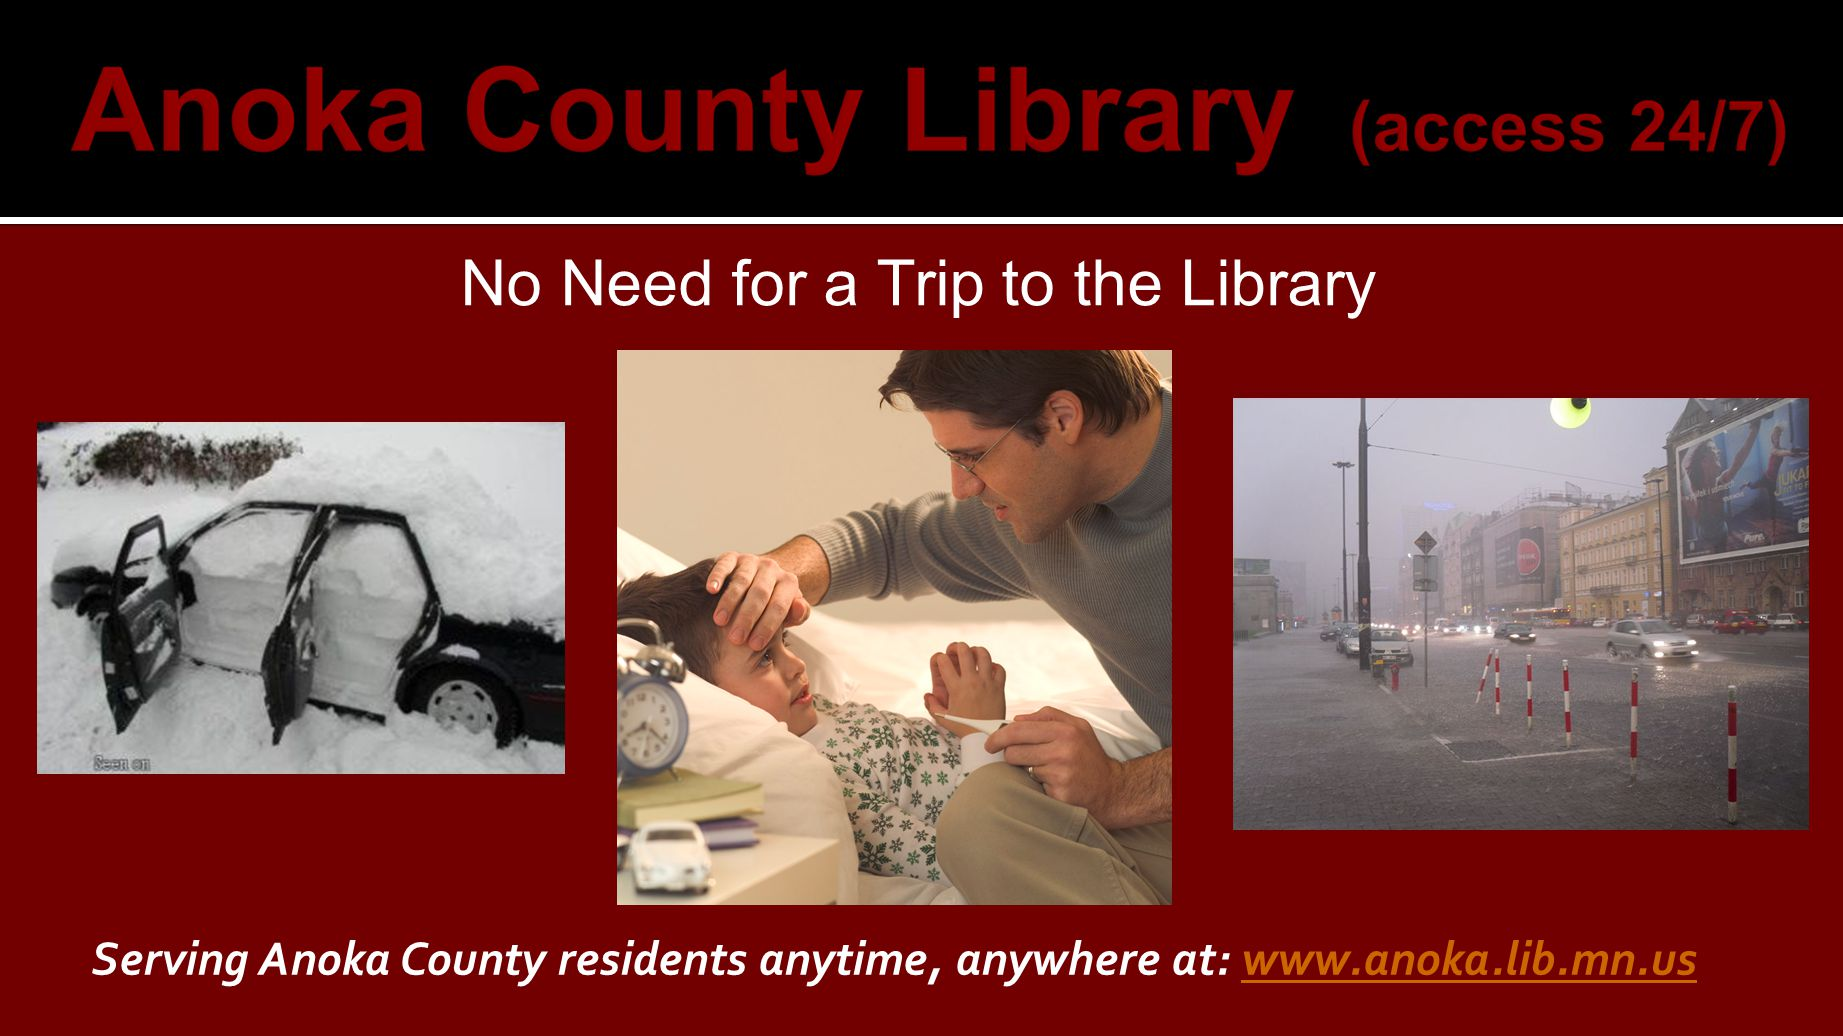 No Need for a Trip to the Library Serving Anoka County residents anytime, anywhere at: www.anoka.lib.mn.uswww.anoka.lib.mn.us